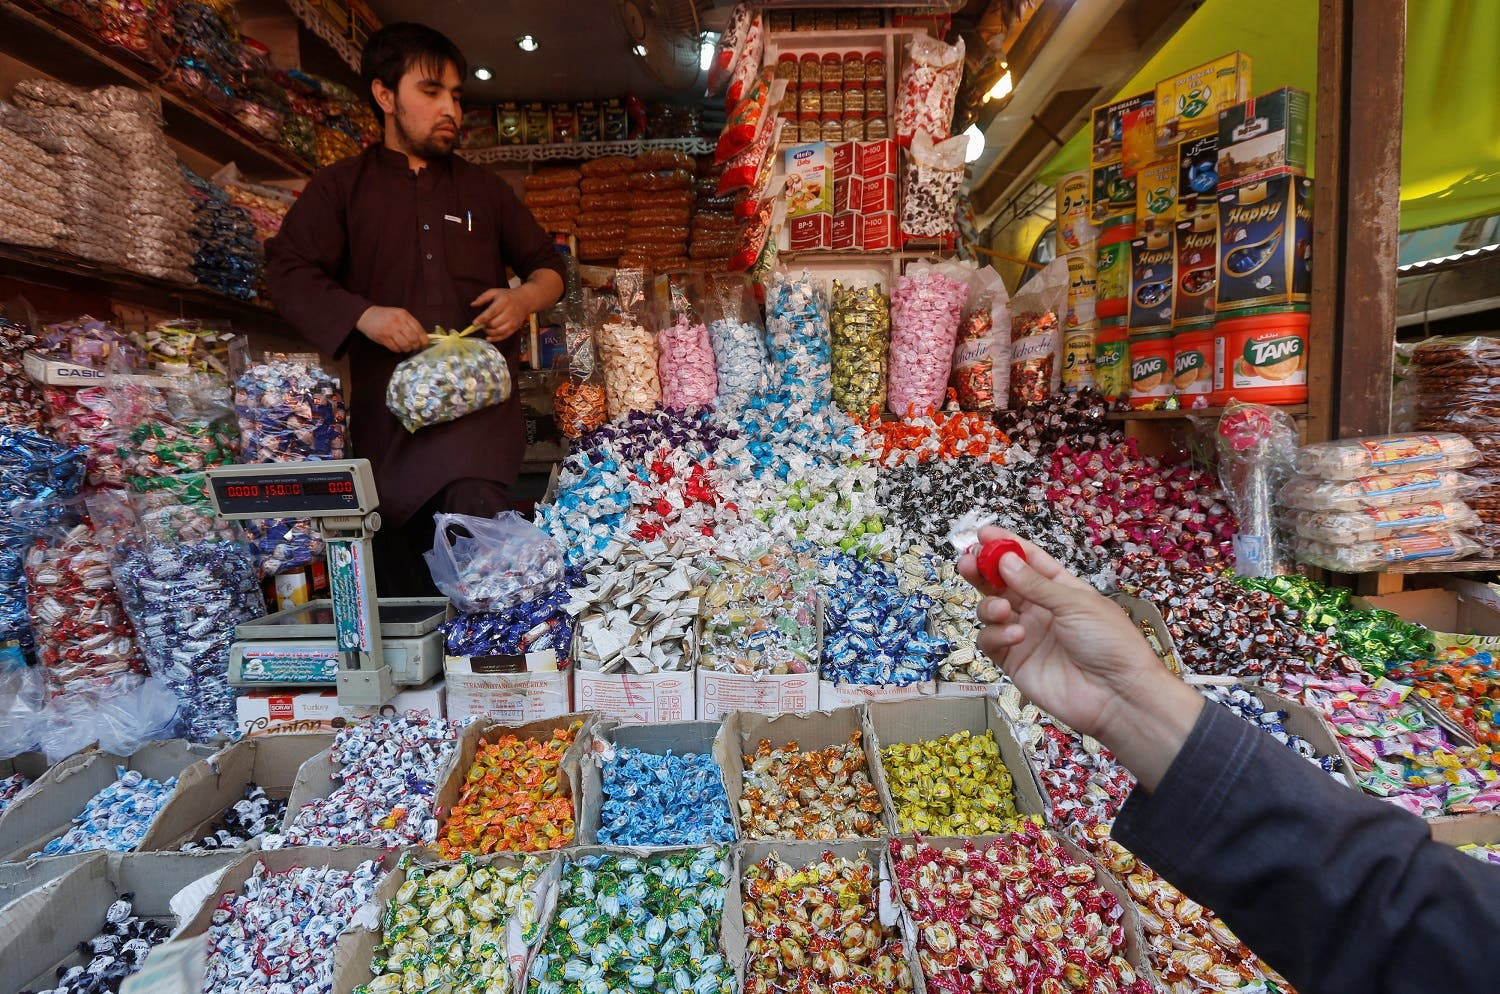 People shop for festive goodies in preparation for Eid al-Fitr in Kabul, Afghanistan July 4, 2016. REUTERS